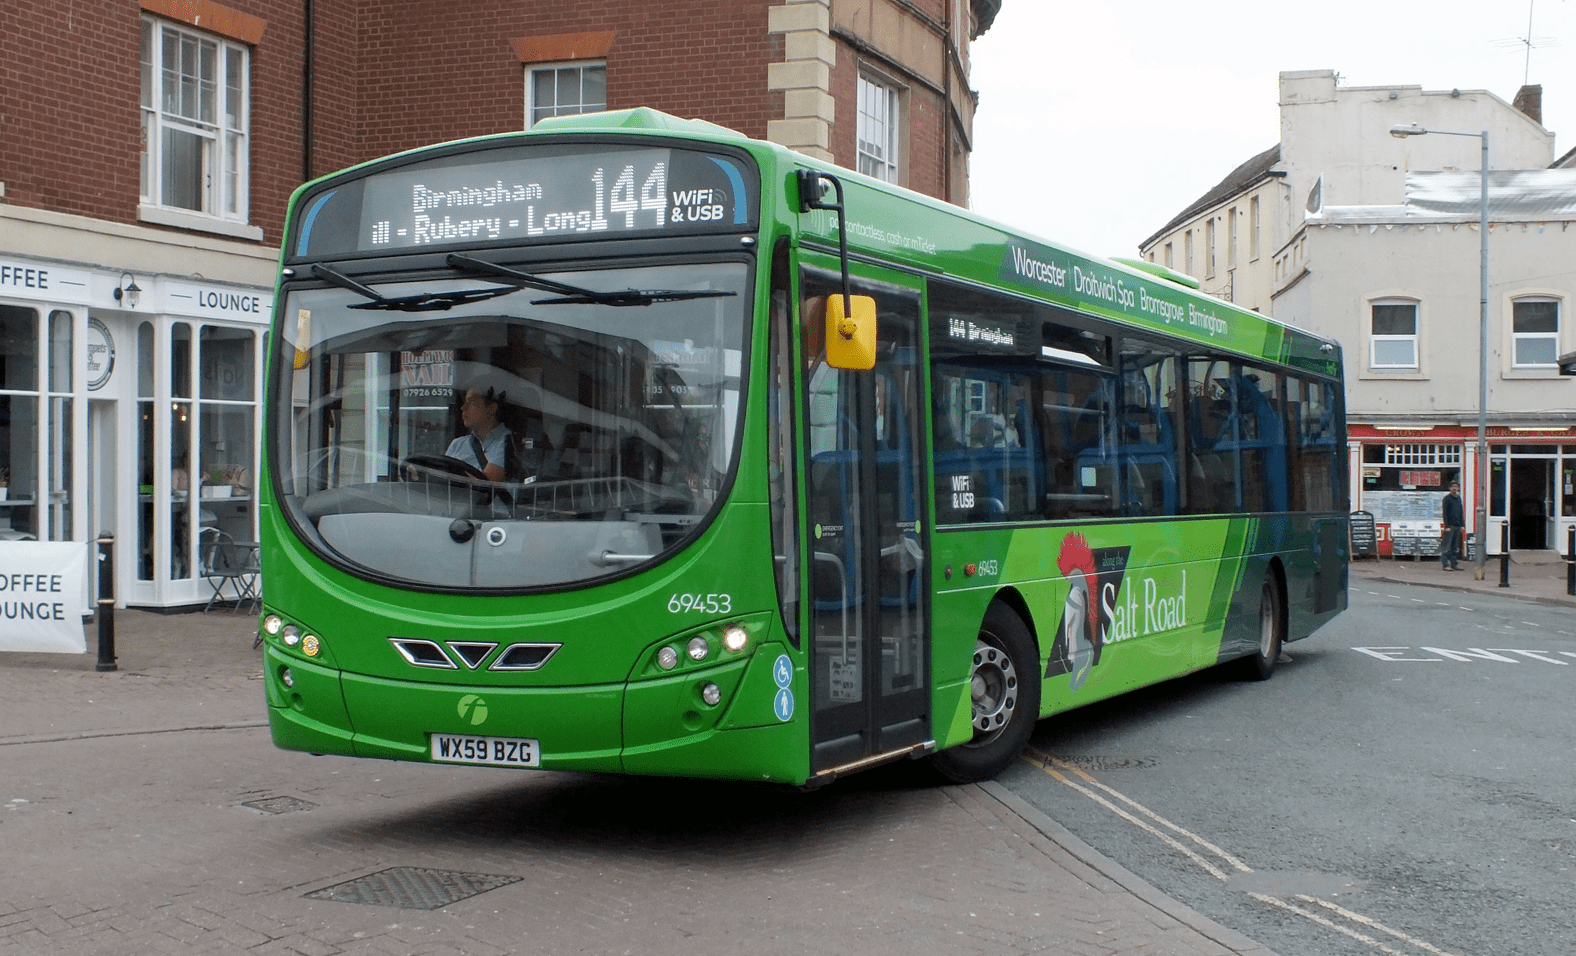 #AYearOfBuses 144: The Salt Road Birmingham – Worcester